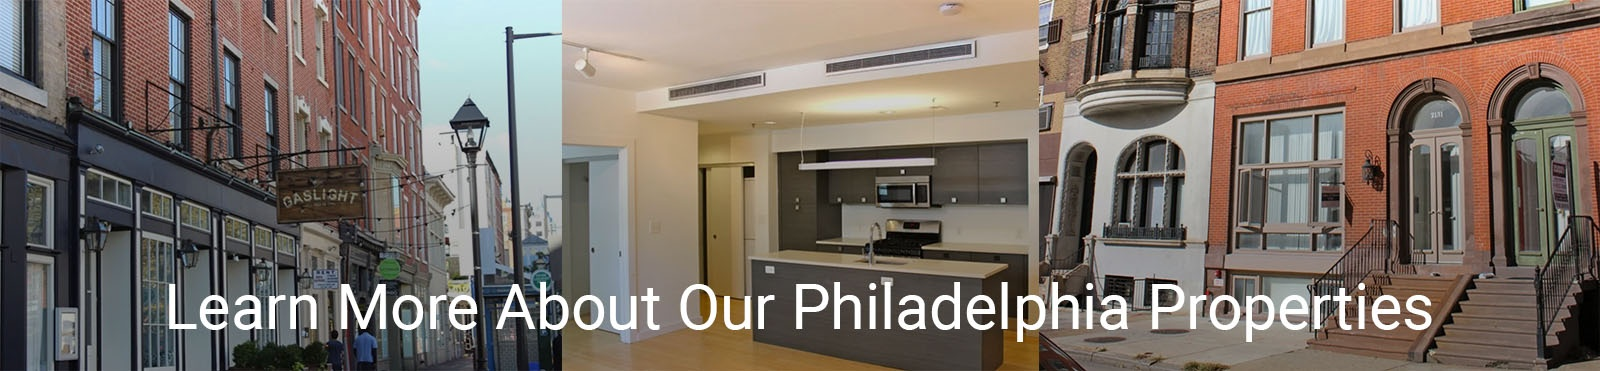 Learn More About our Philadelphia Properties